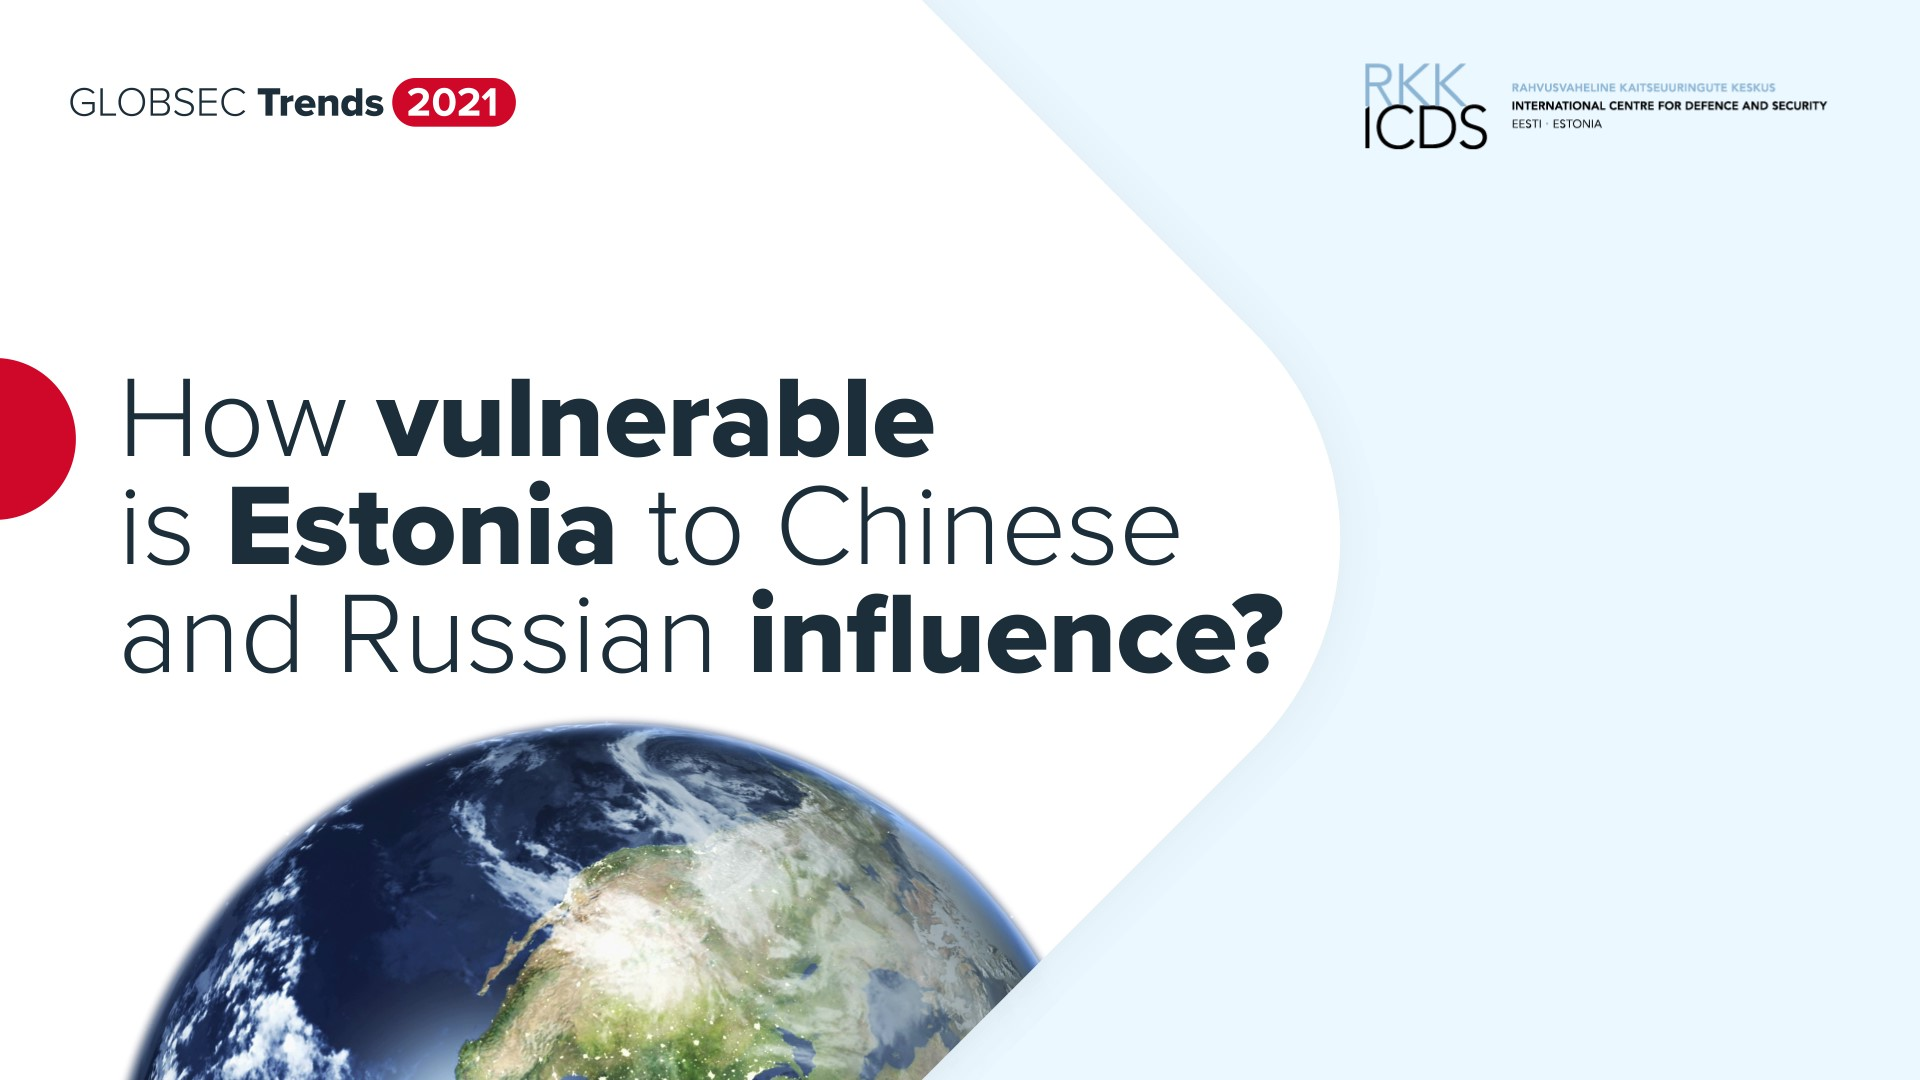 GLOBSEC Trends 2021: Estonia one year into the COVID-19 pandemic